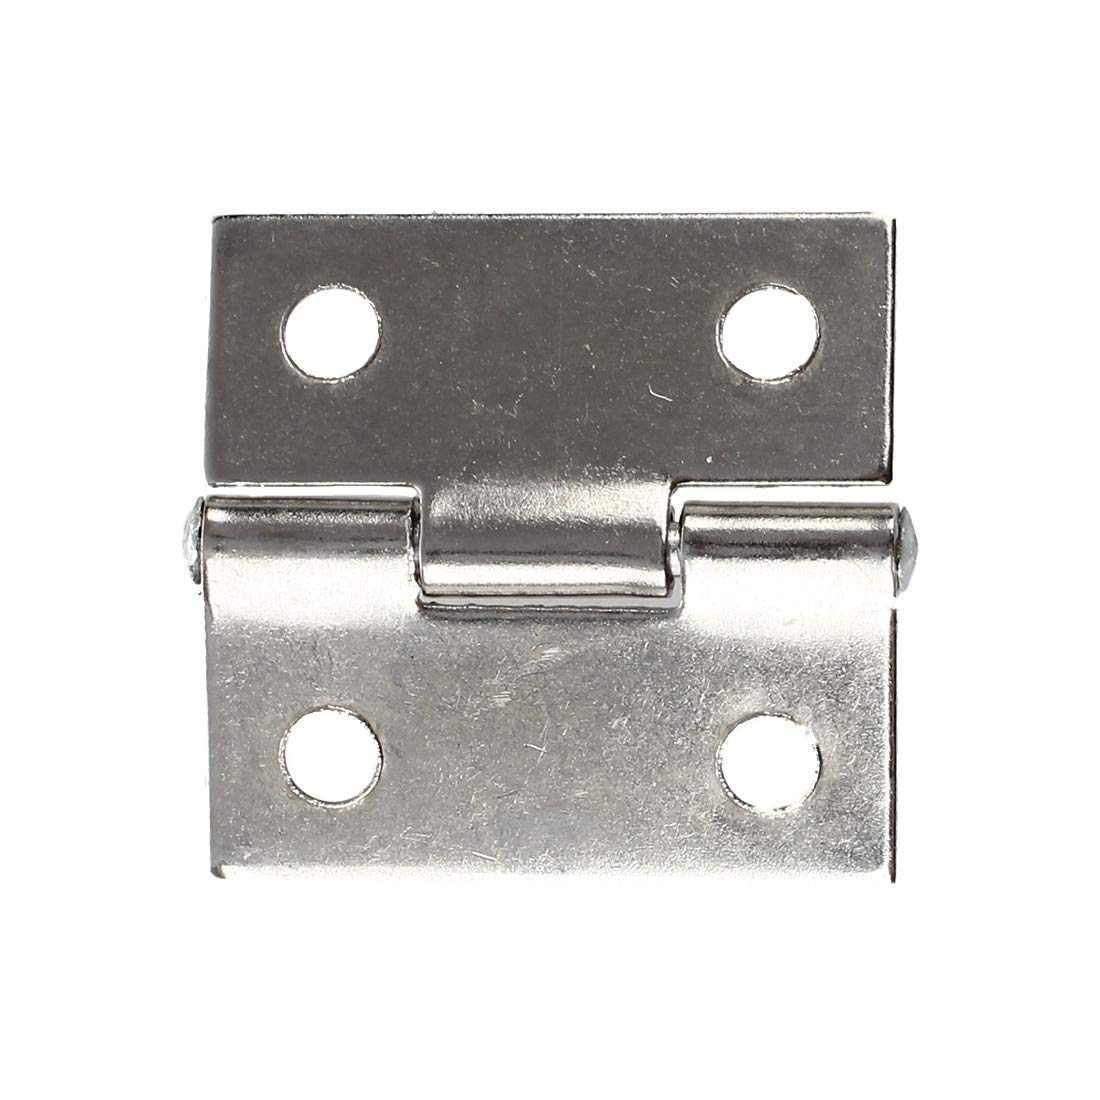 Stainless Steel 316 Butt Hinge without Hole Non-Removable Pin 4 Long 1//4 Pin Diameter 4 Open Width Pack of 1 0.120 Leaf Thickness Unfinished